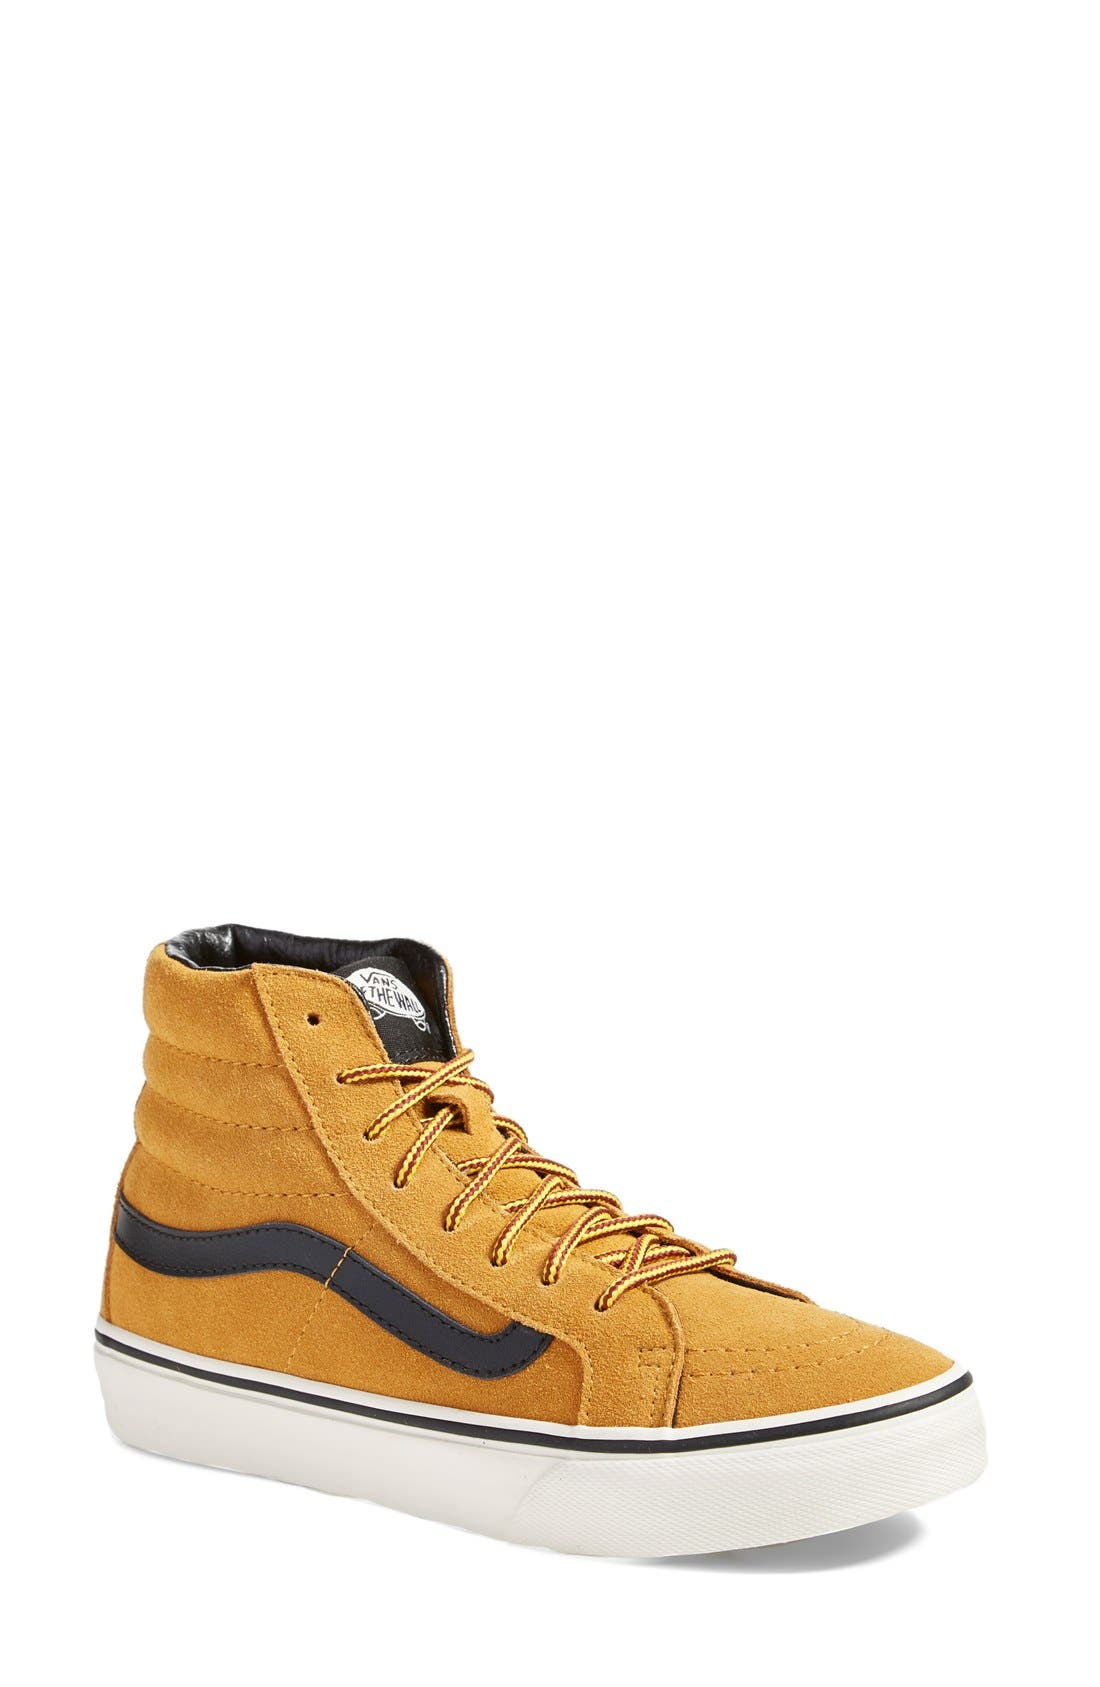 Alternate Image 1 Selected - Vans 'Sk8-Hi Slim' Suede Sneaker (Women)